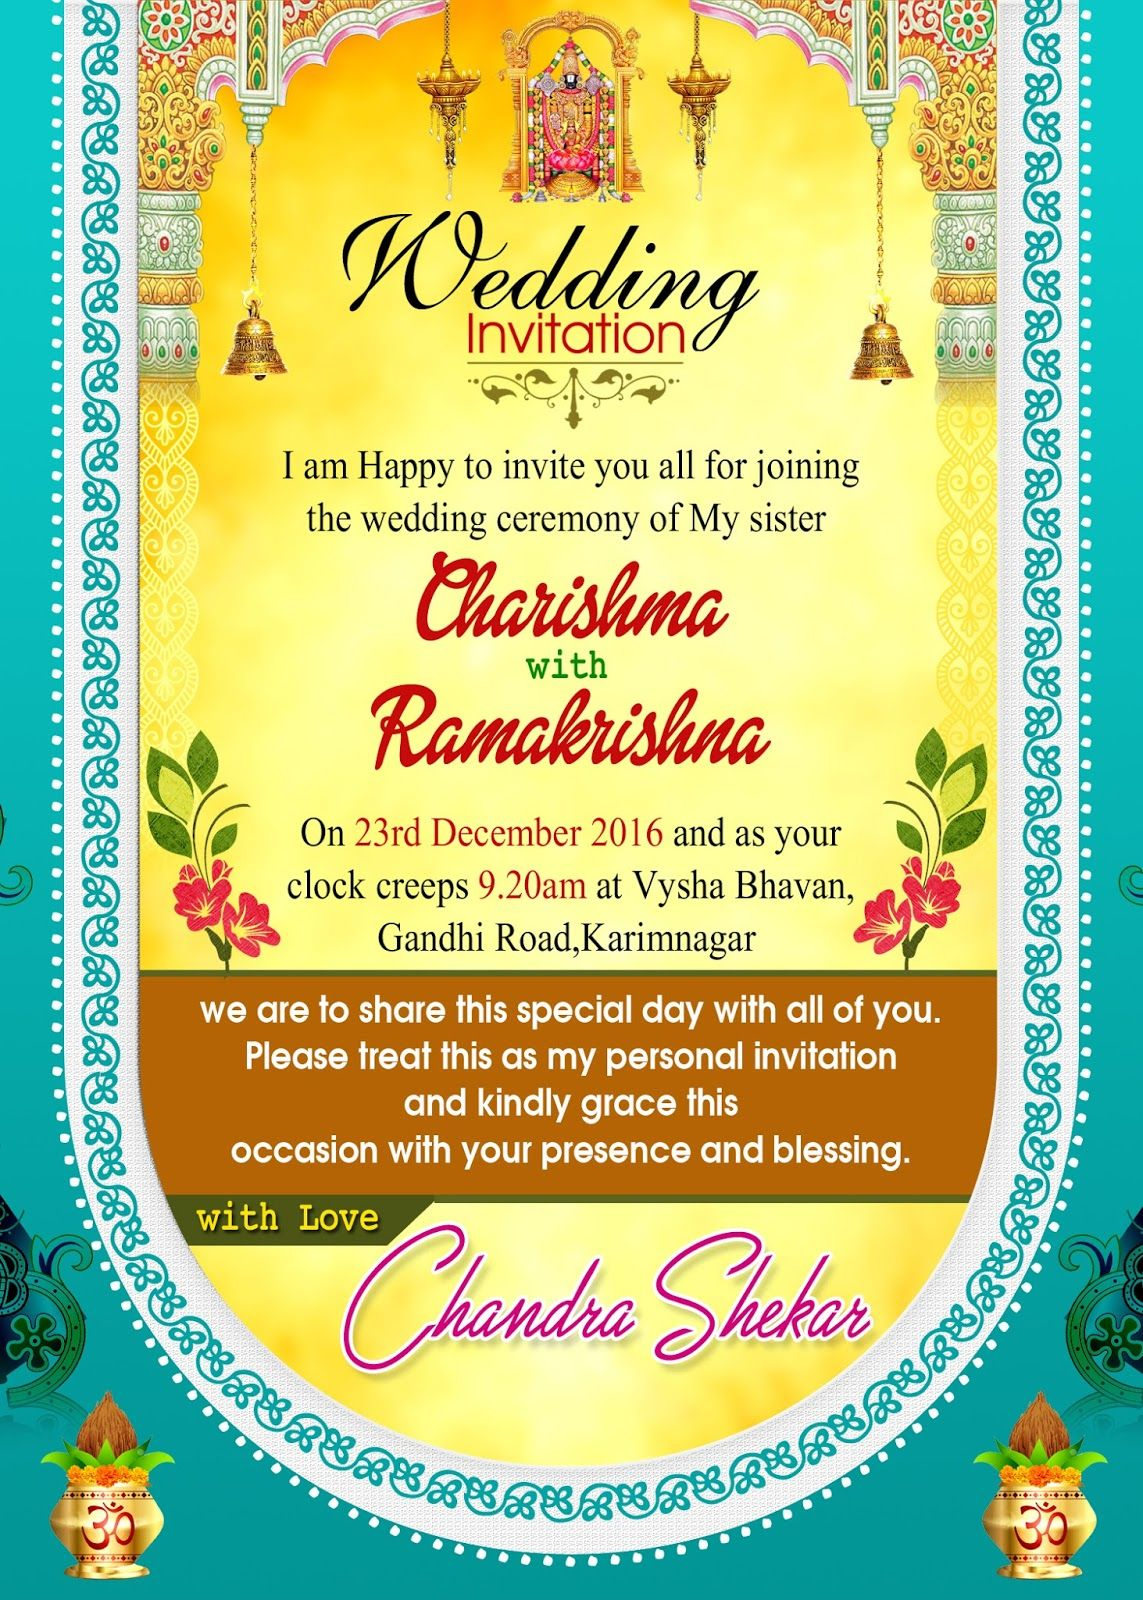 Pin By Kakuli Mishra On Indian Wedding Invitations Pinterest - Wedding invitation templates: wedding card invitation templates free download